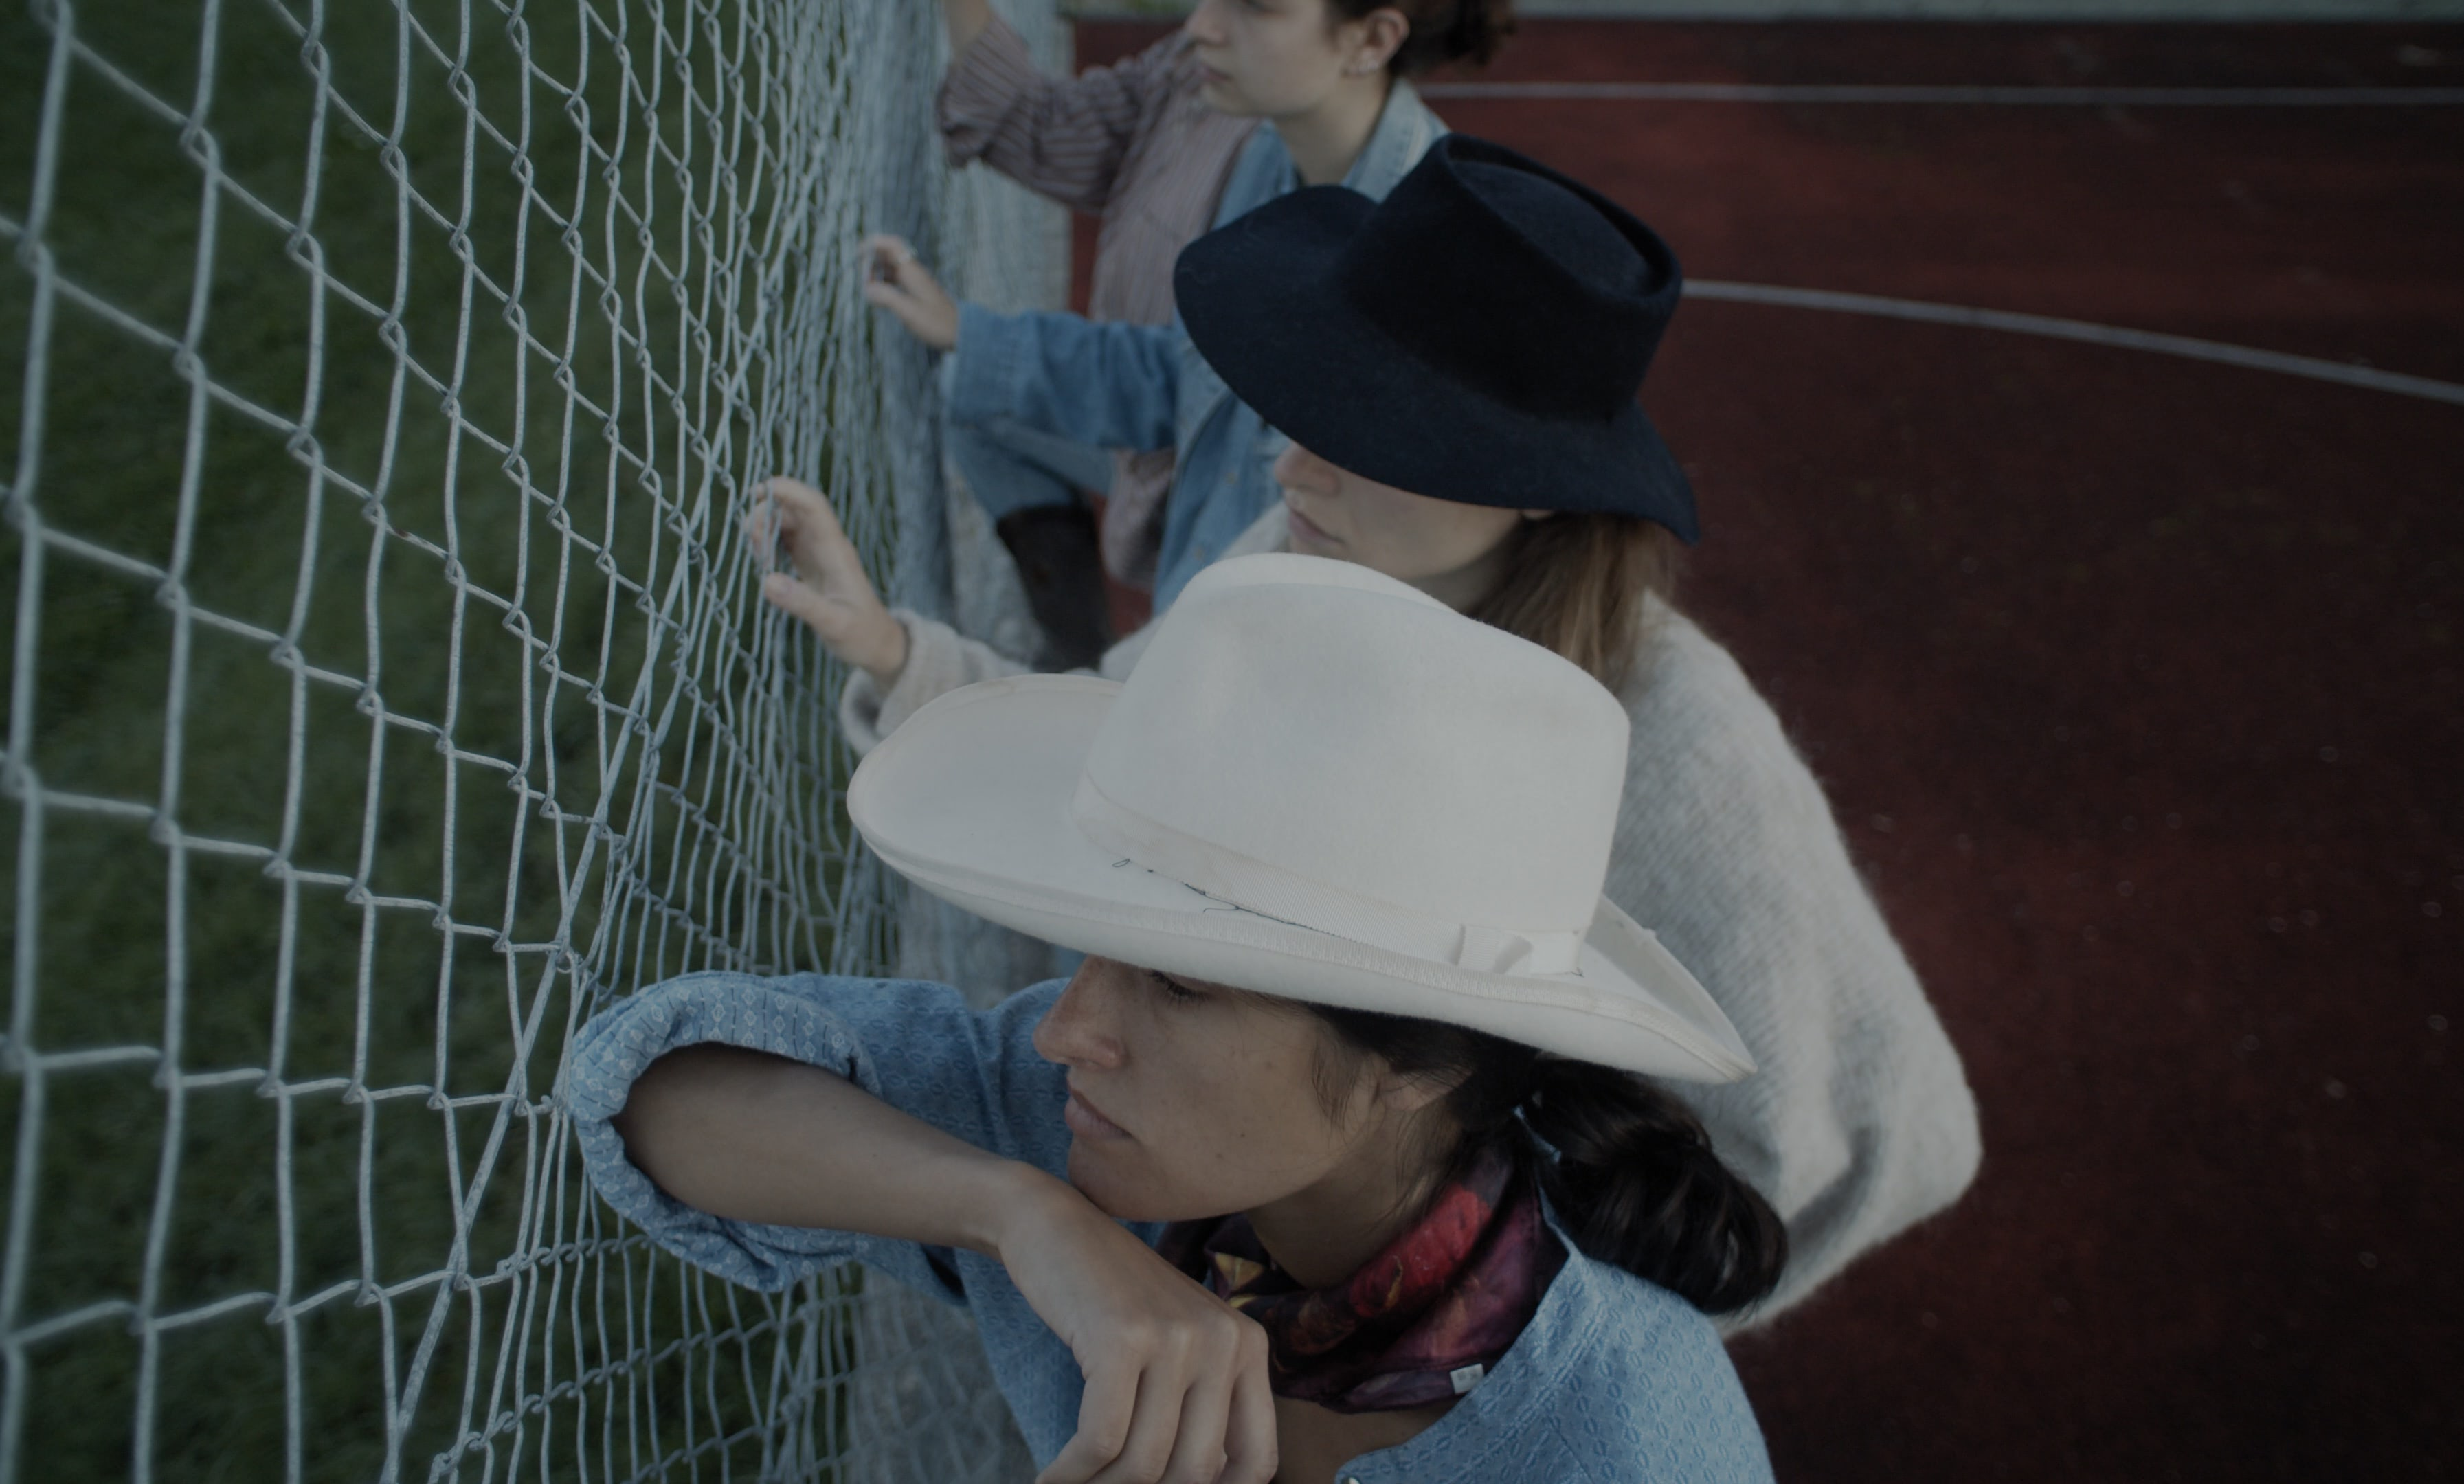 Four women, seen from above, leaning against a chain link fence. They are wearing cowboy hats.